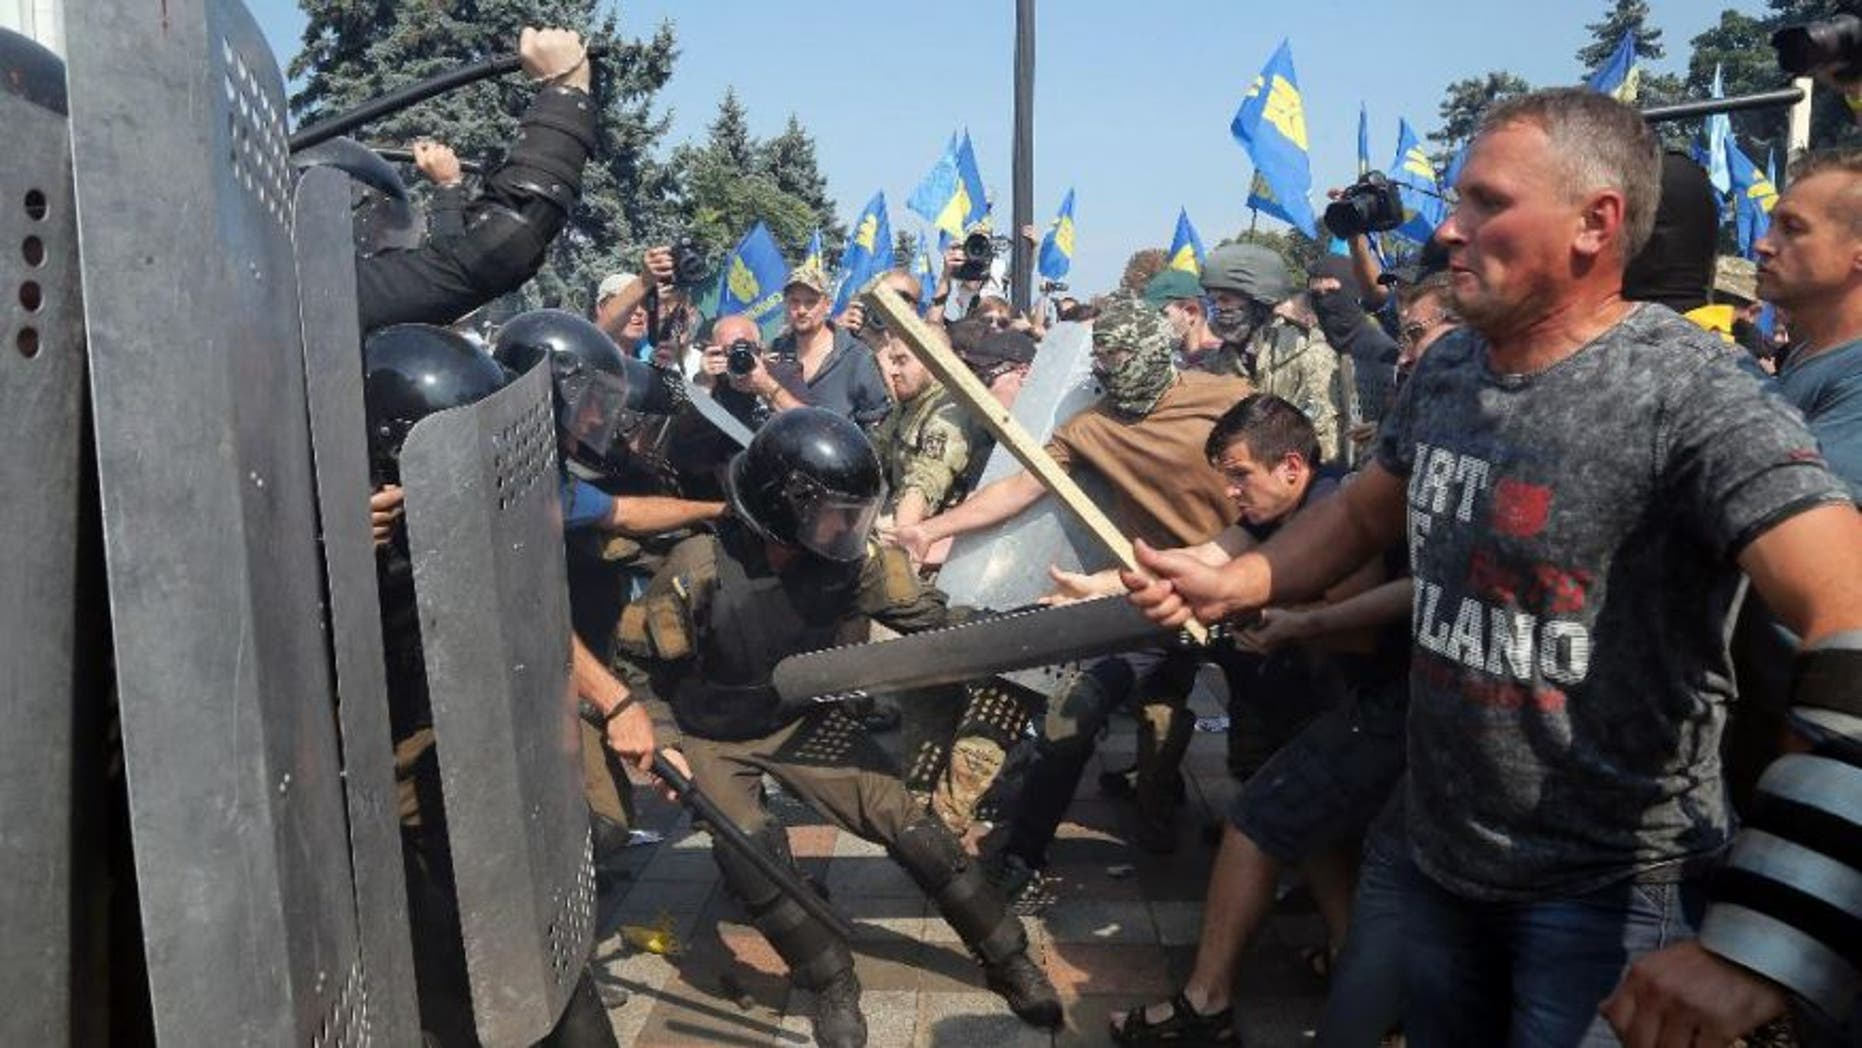 August 31, 2015: Ukraine protesters clash with police in Kiev after vote to give greater powers to the east.